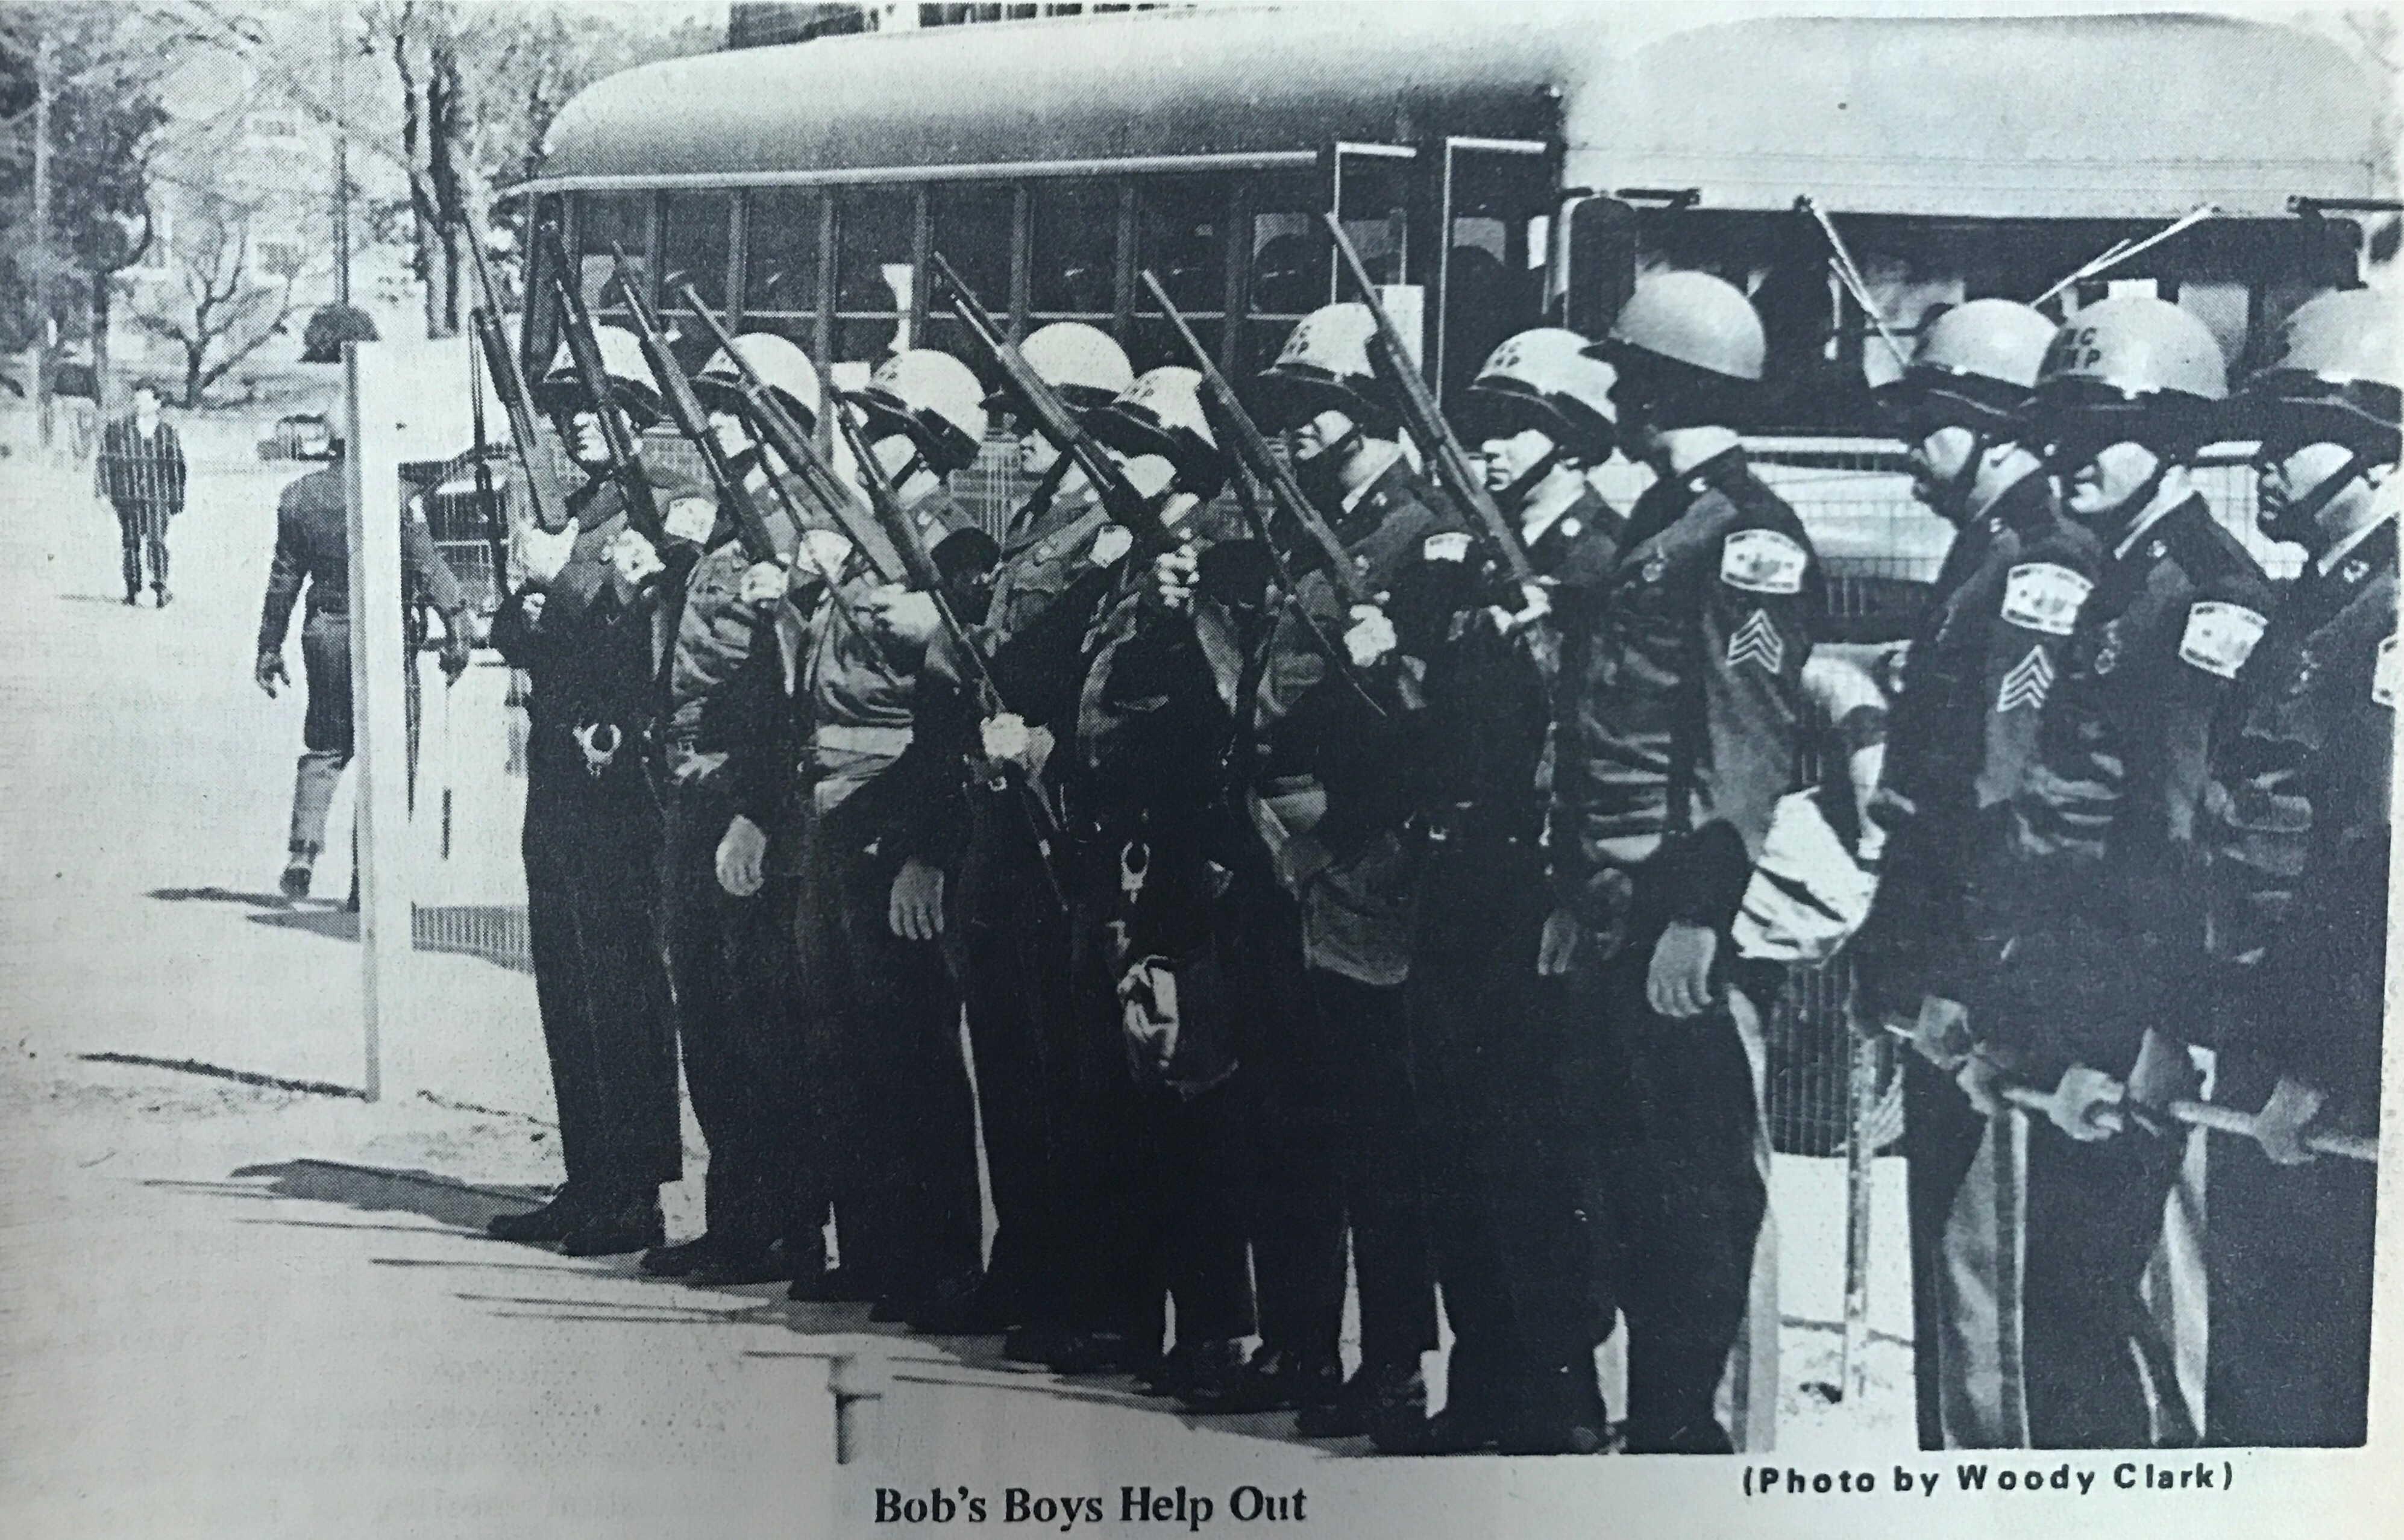 Picture in the March 14, 1969, edition of The Daily Tarheel capturing the state troopers, ordered by Governor Bob Scott, who helped with the evacuation of Manning Hall.